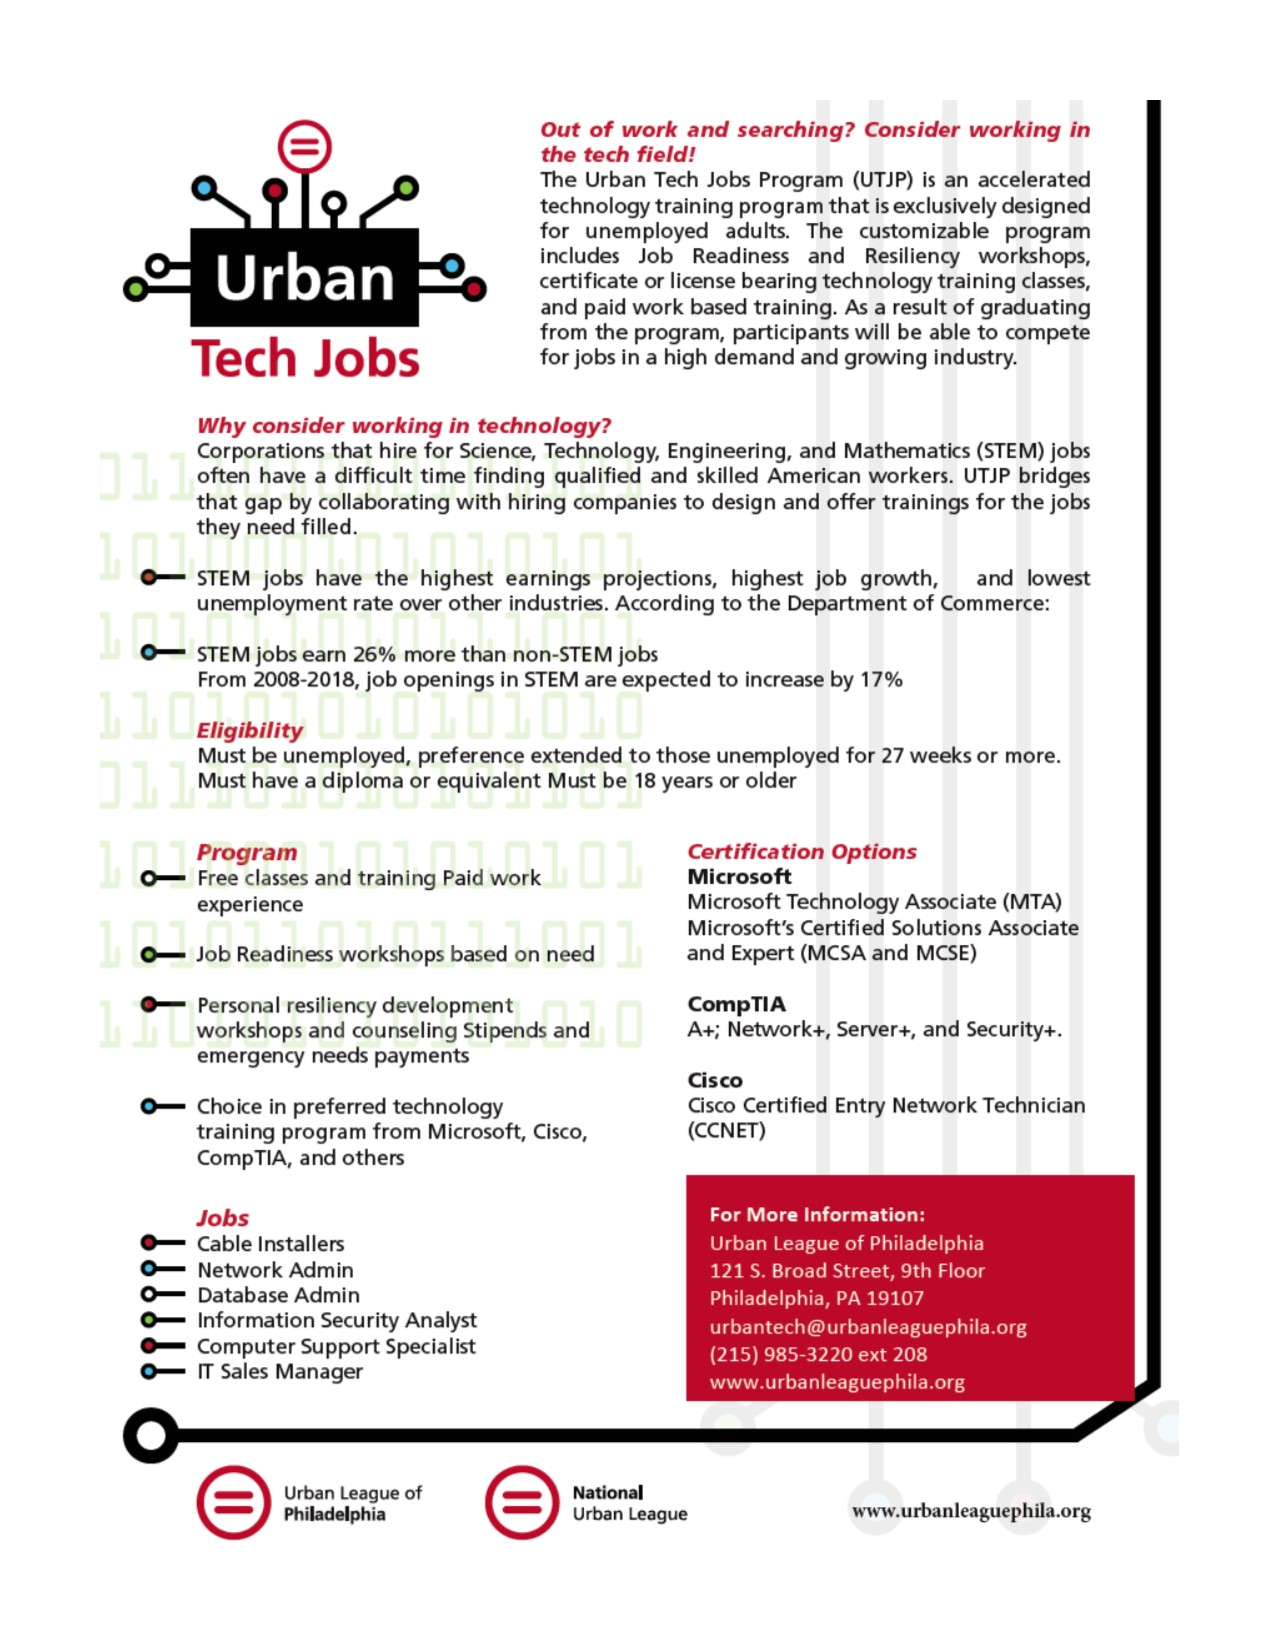 The urban tech jobs program utjp has begun recruiting for the this free training program includes certificate or license bearing tech training classes and paid internships xflitez Images